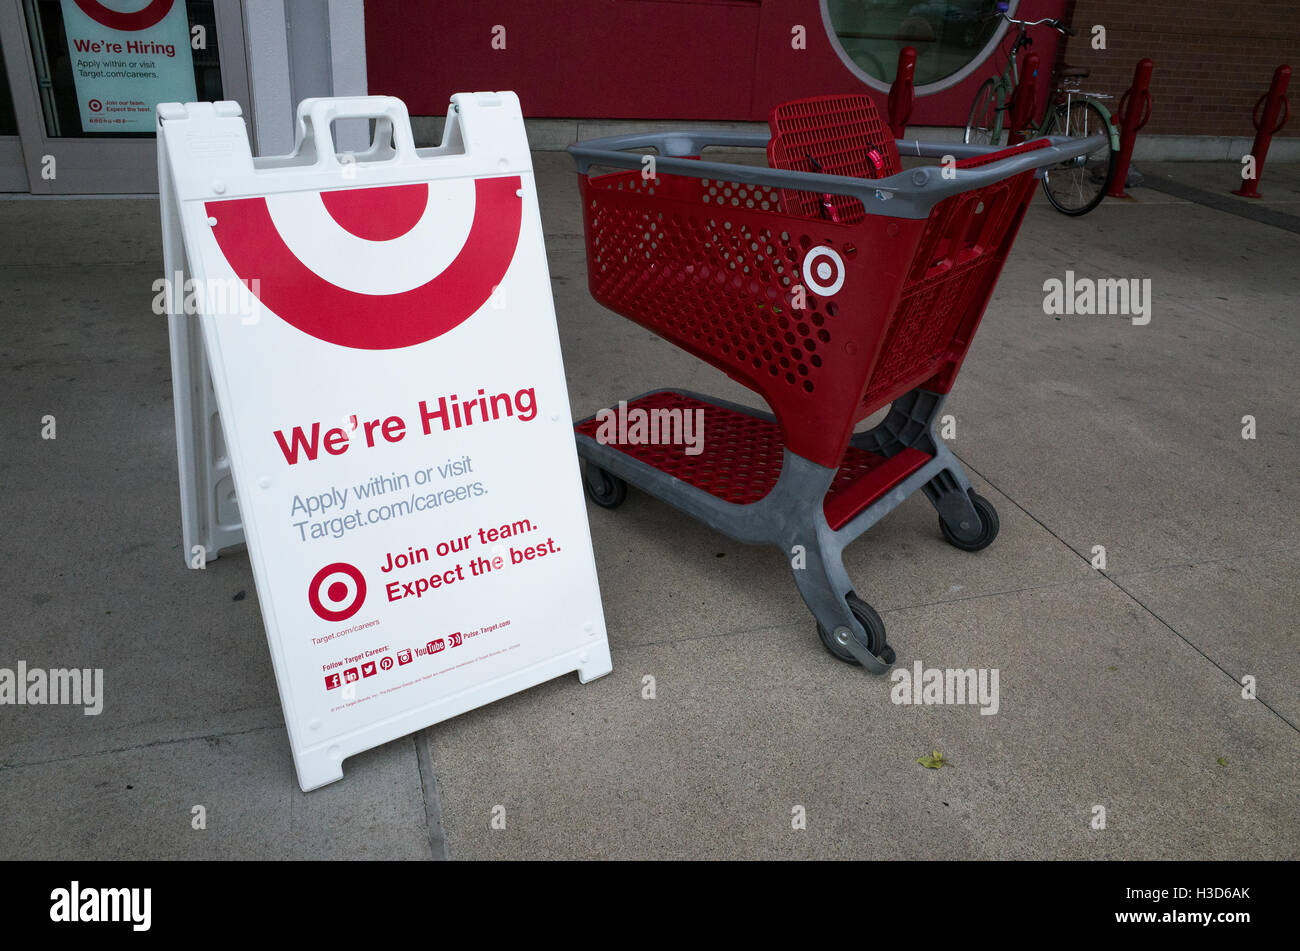 Target A-Frame board advertising we're hiring. St Paul Minnesota MN USA - Stock Image